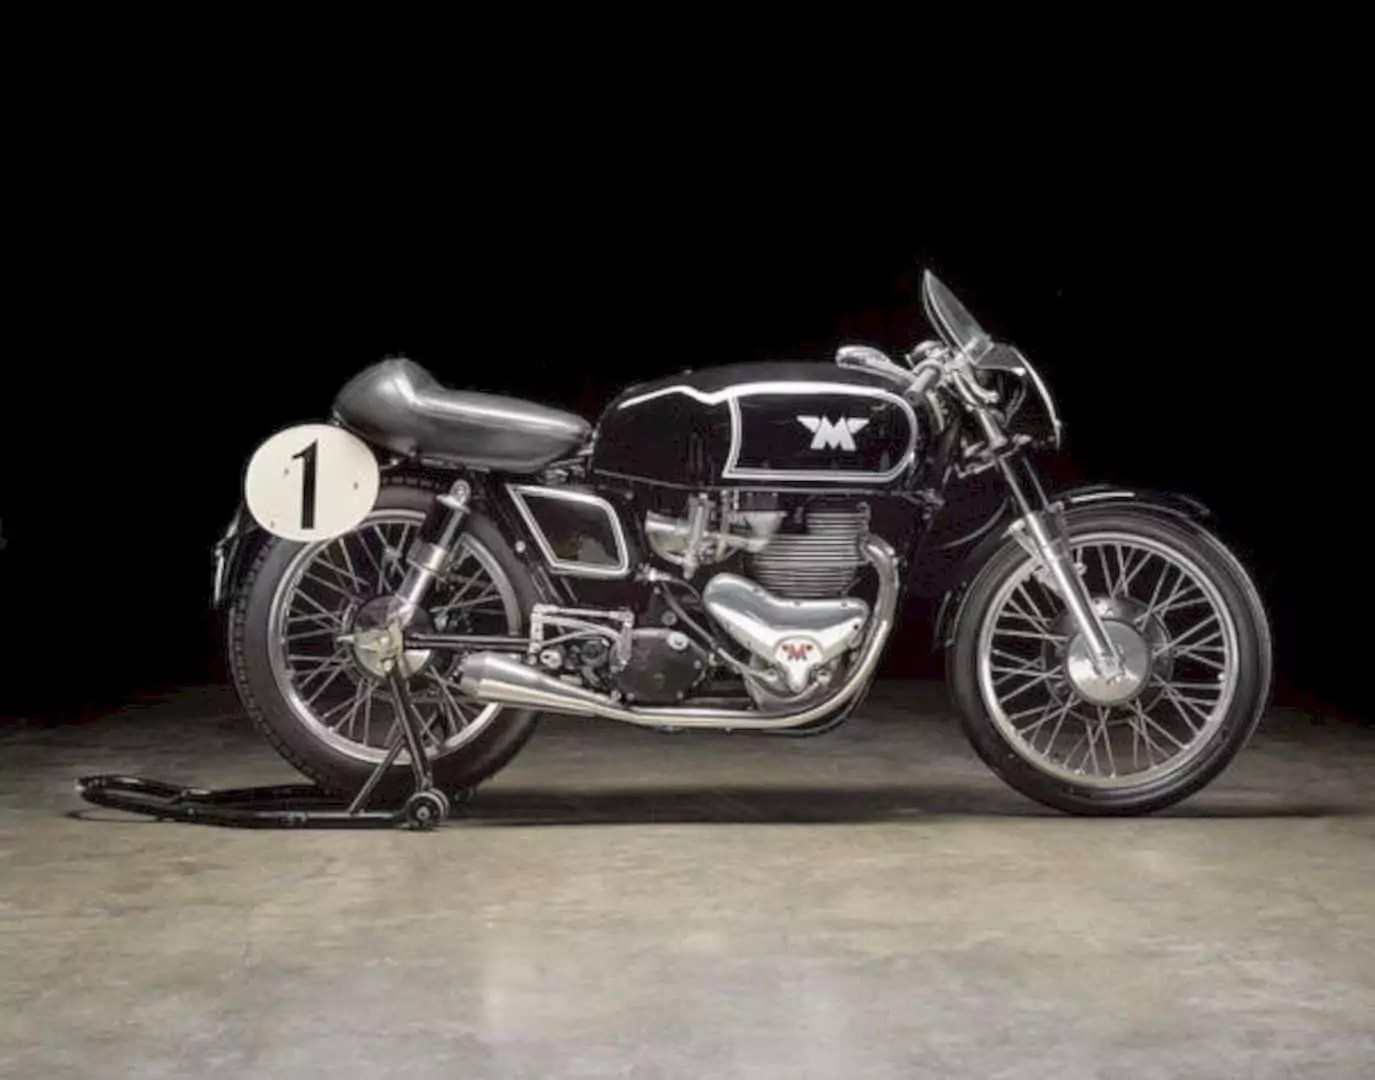 The 1955 Matchless 498cc G45 Motorcycle 1